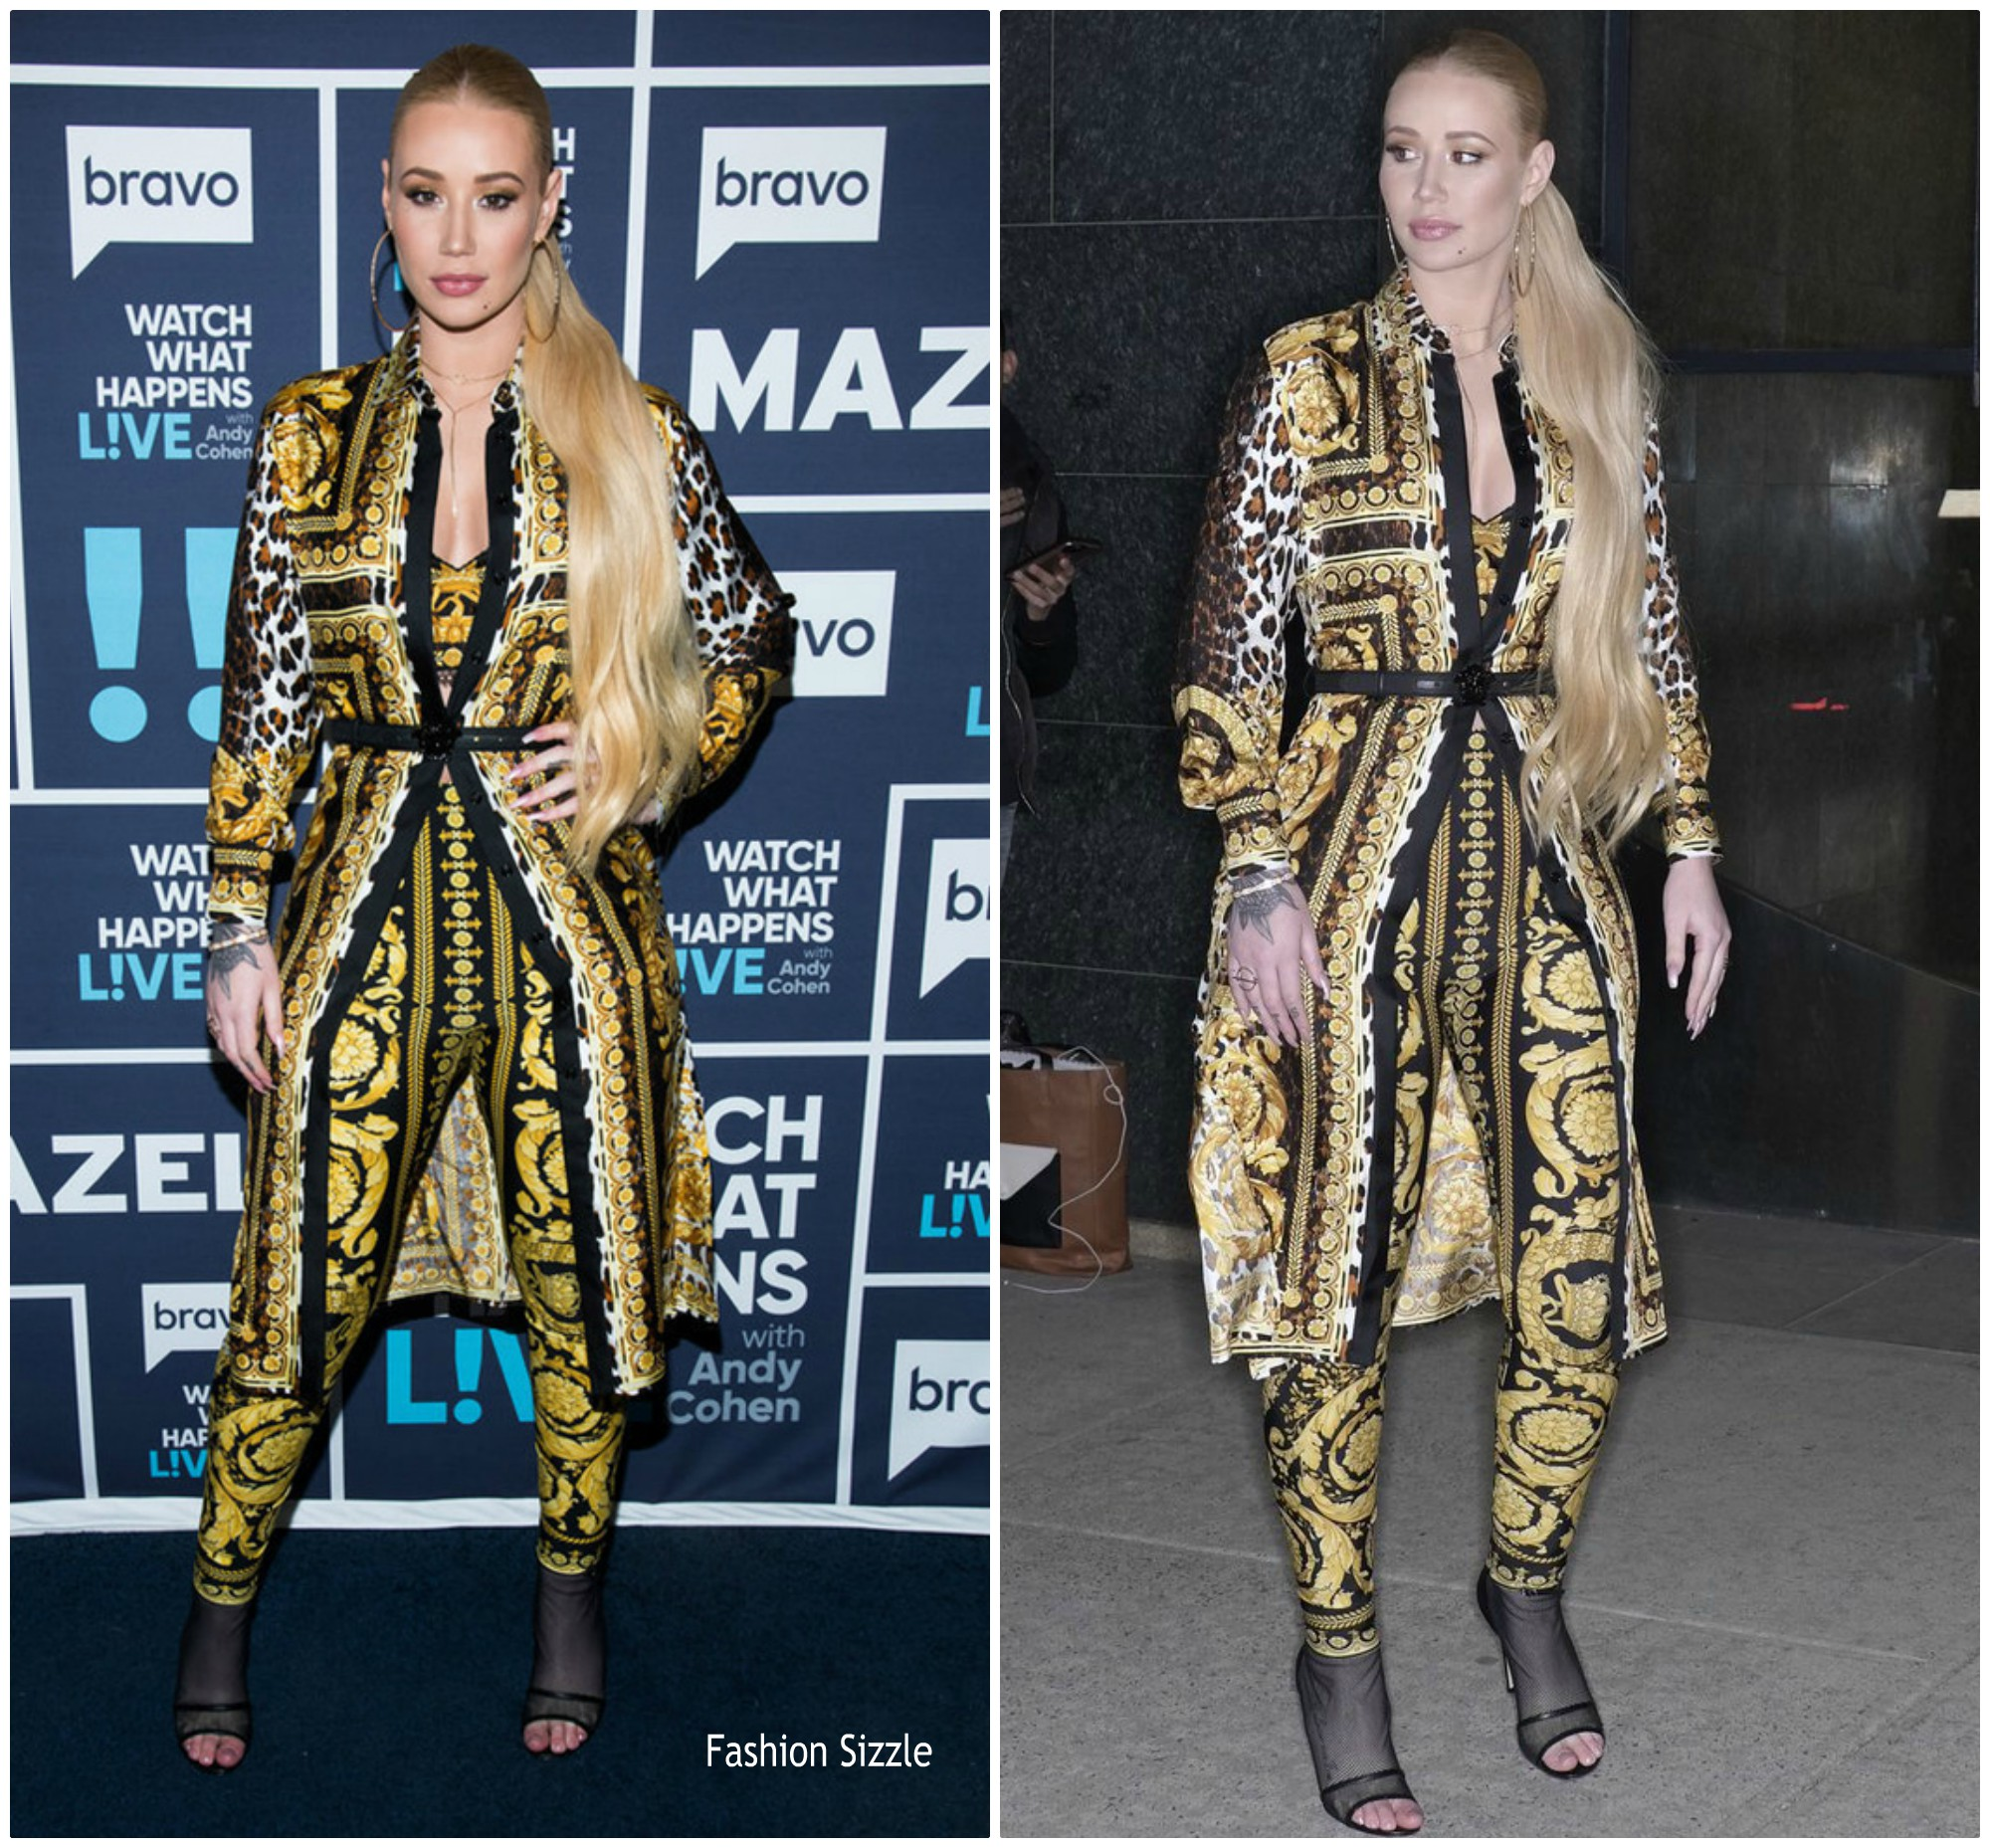 iggy-azalea-in-versace-watch-what-happens-live-